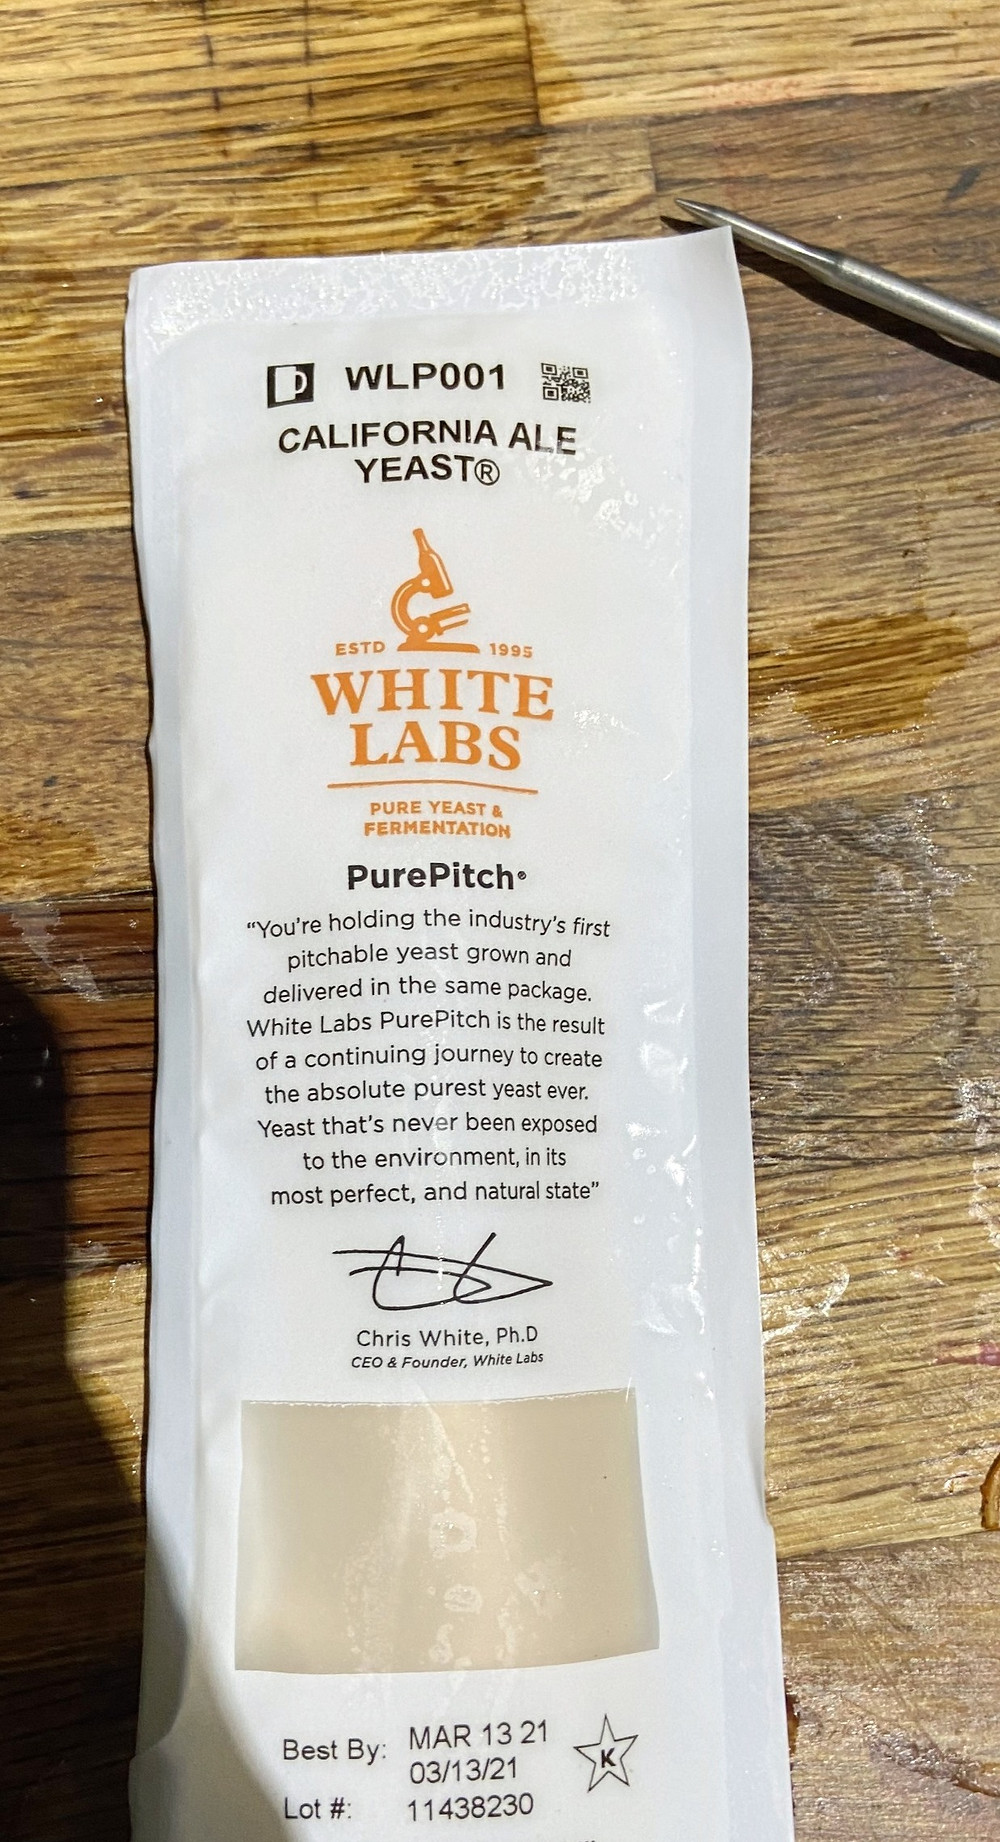 White labs California Ale (WLP001) yeast packet